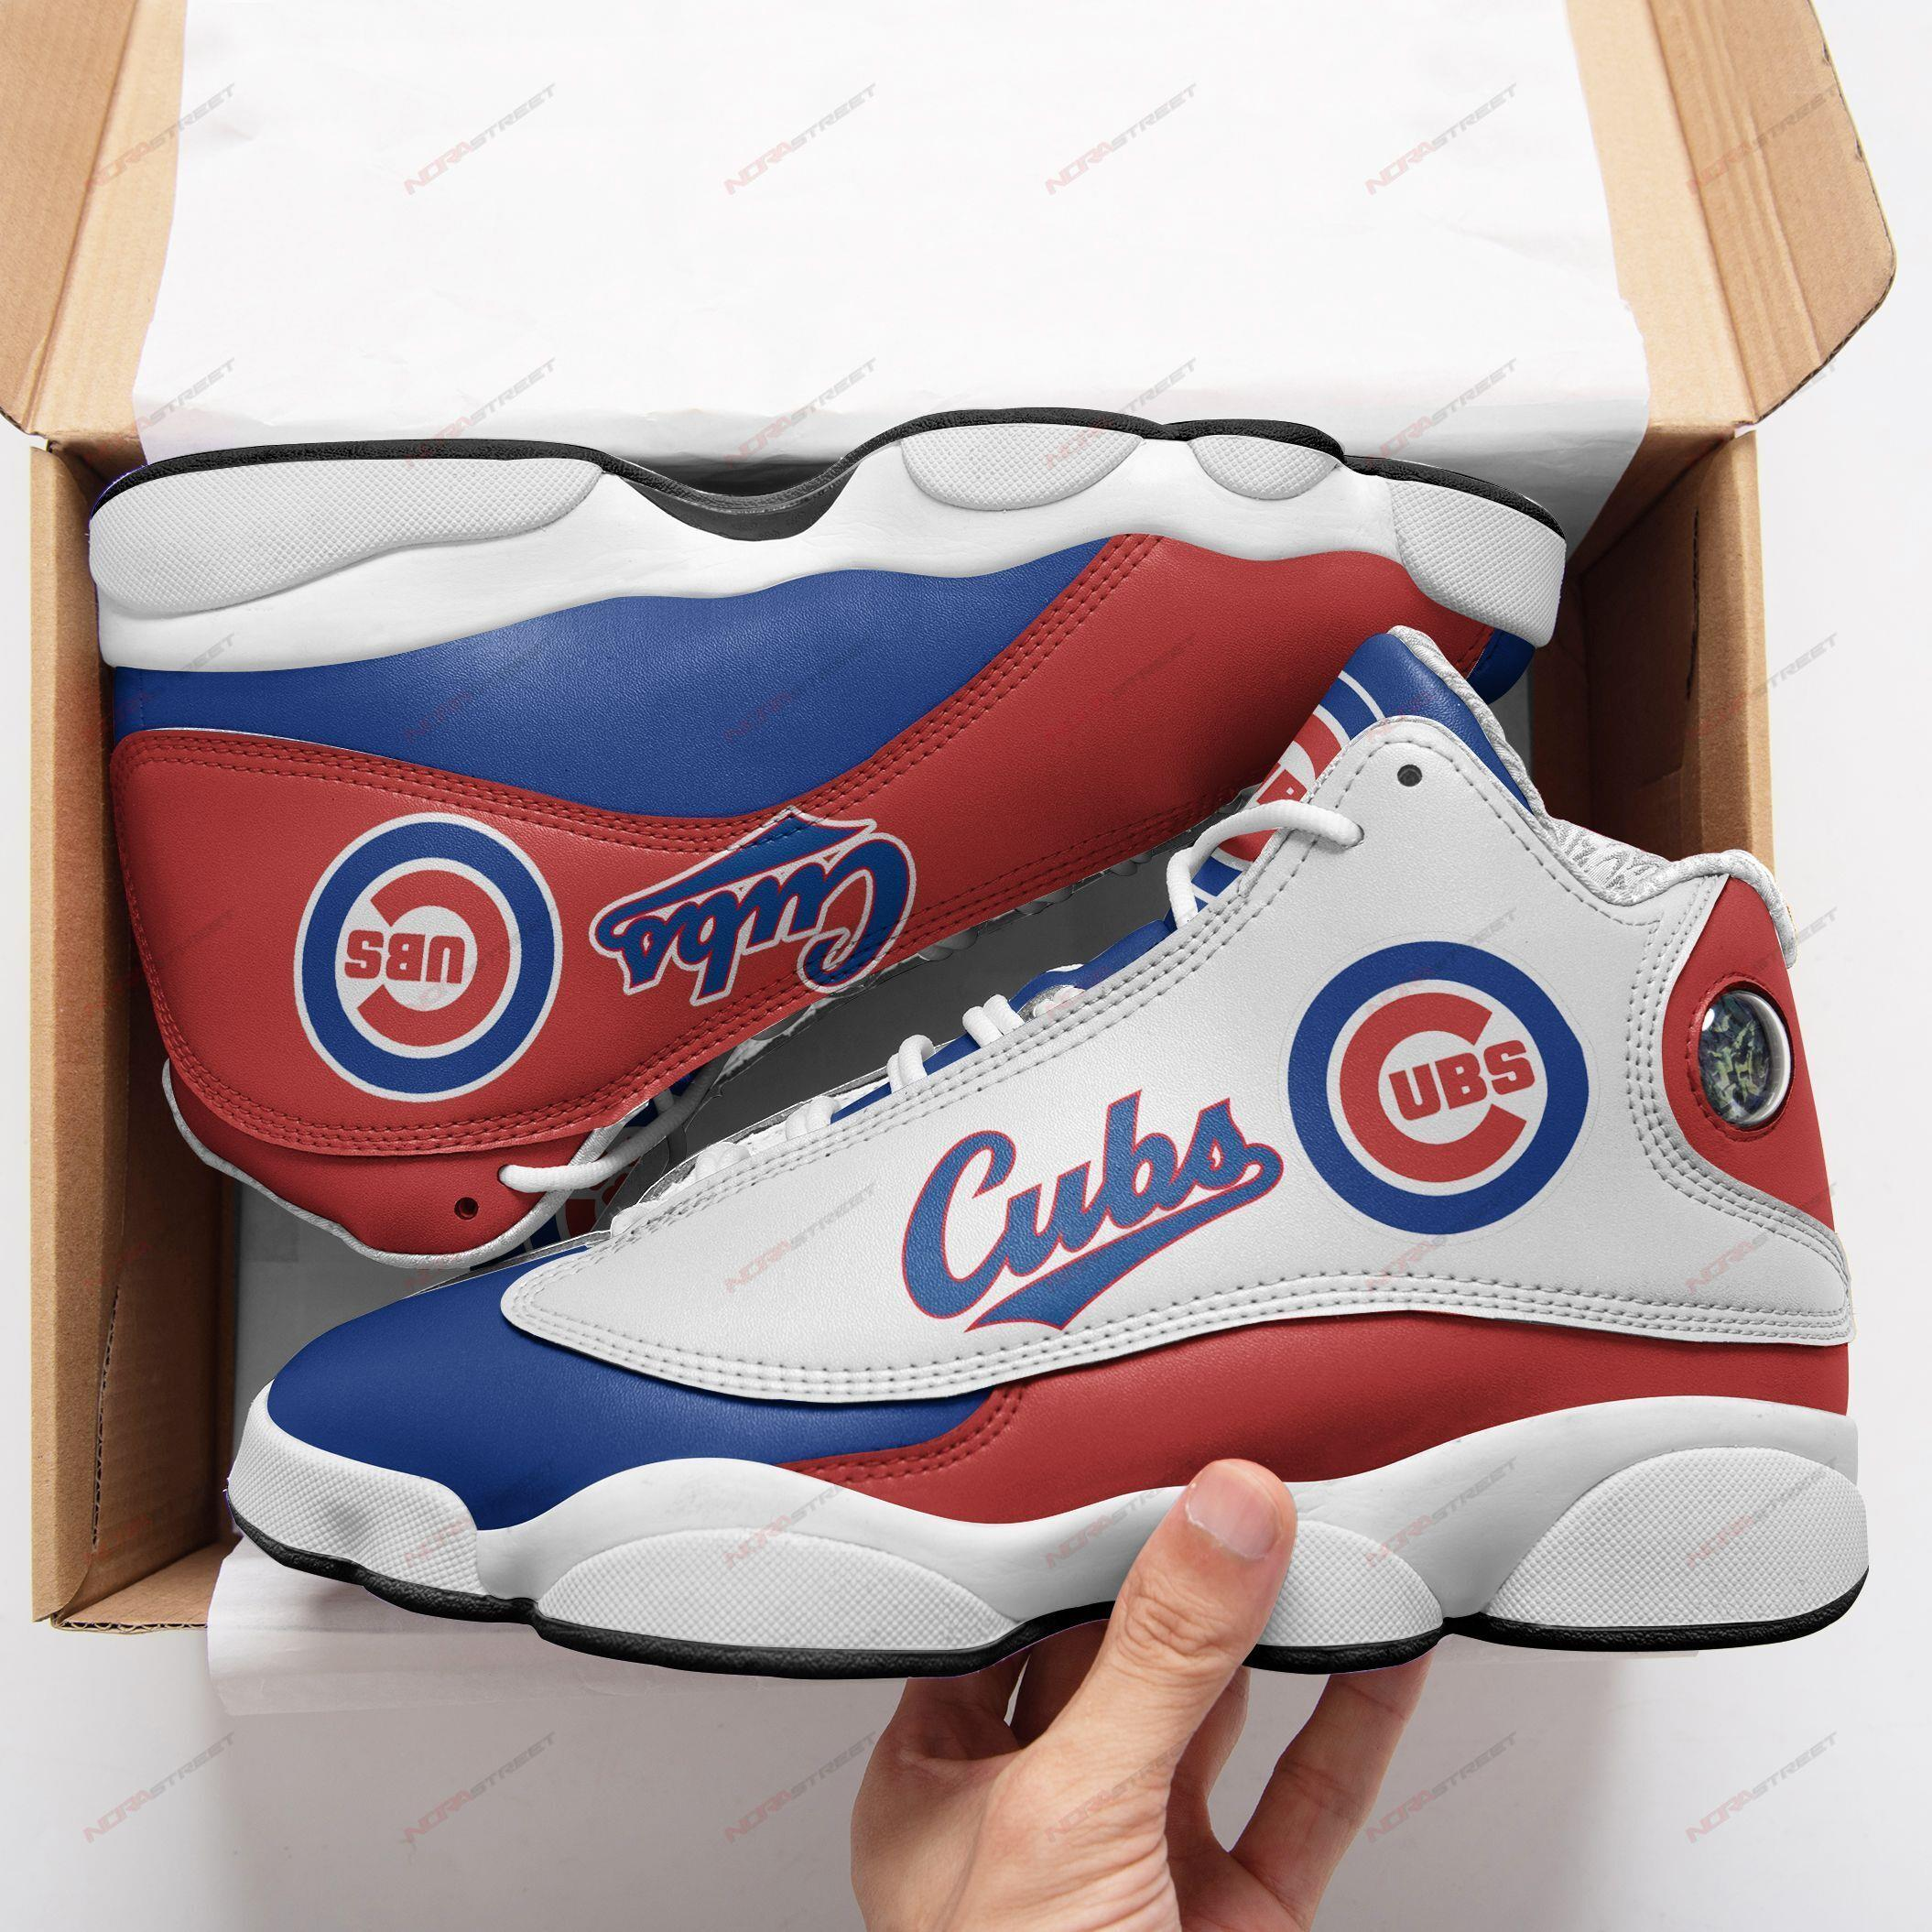 Chicago Cubs Air Jordan 13 Sneakers Sport Shoes Full Size